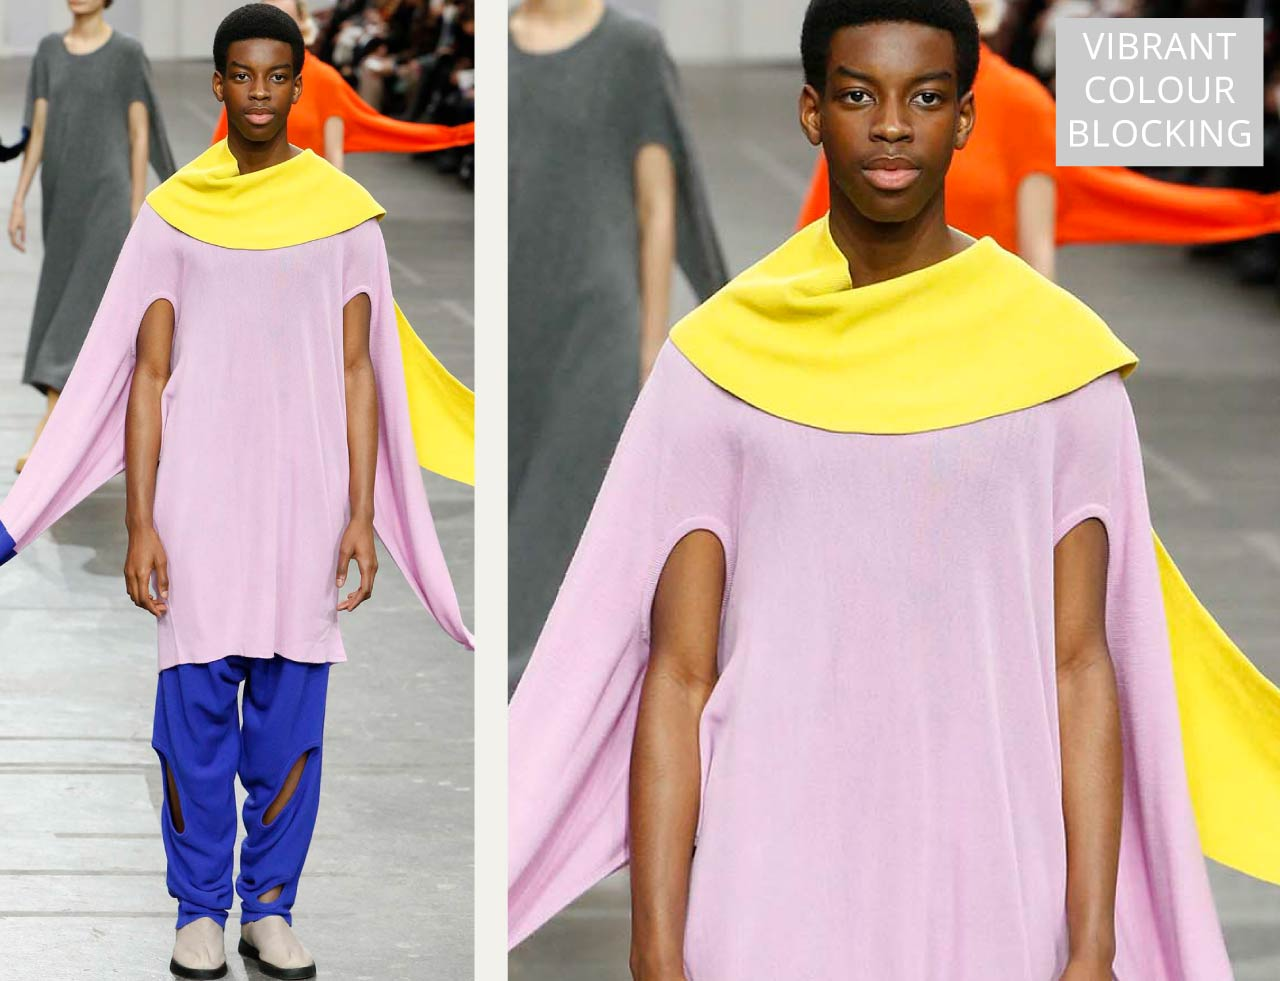 Connected Knits and Layering at Issey Miyake | The Cutting Class. Vibrant colour blocking knits in yellow, pink and blue.